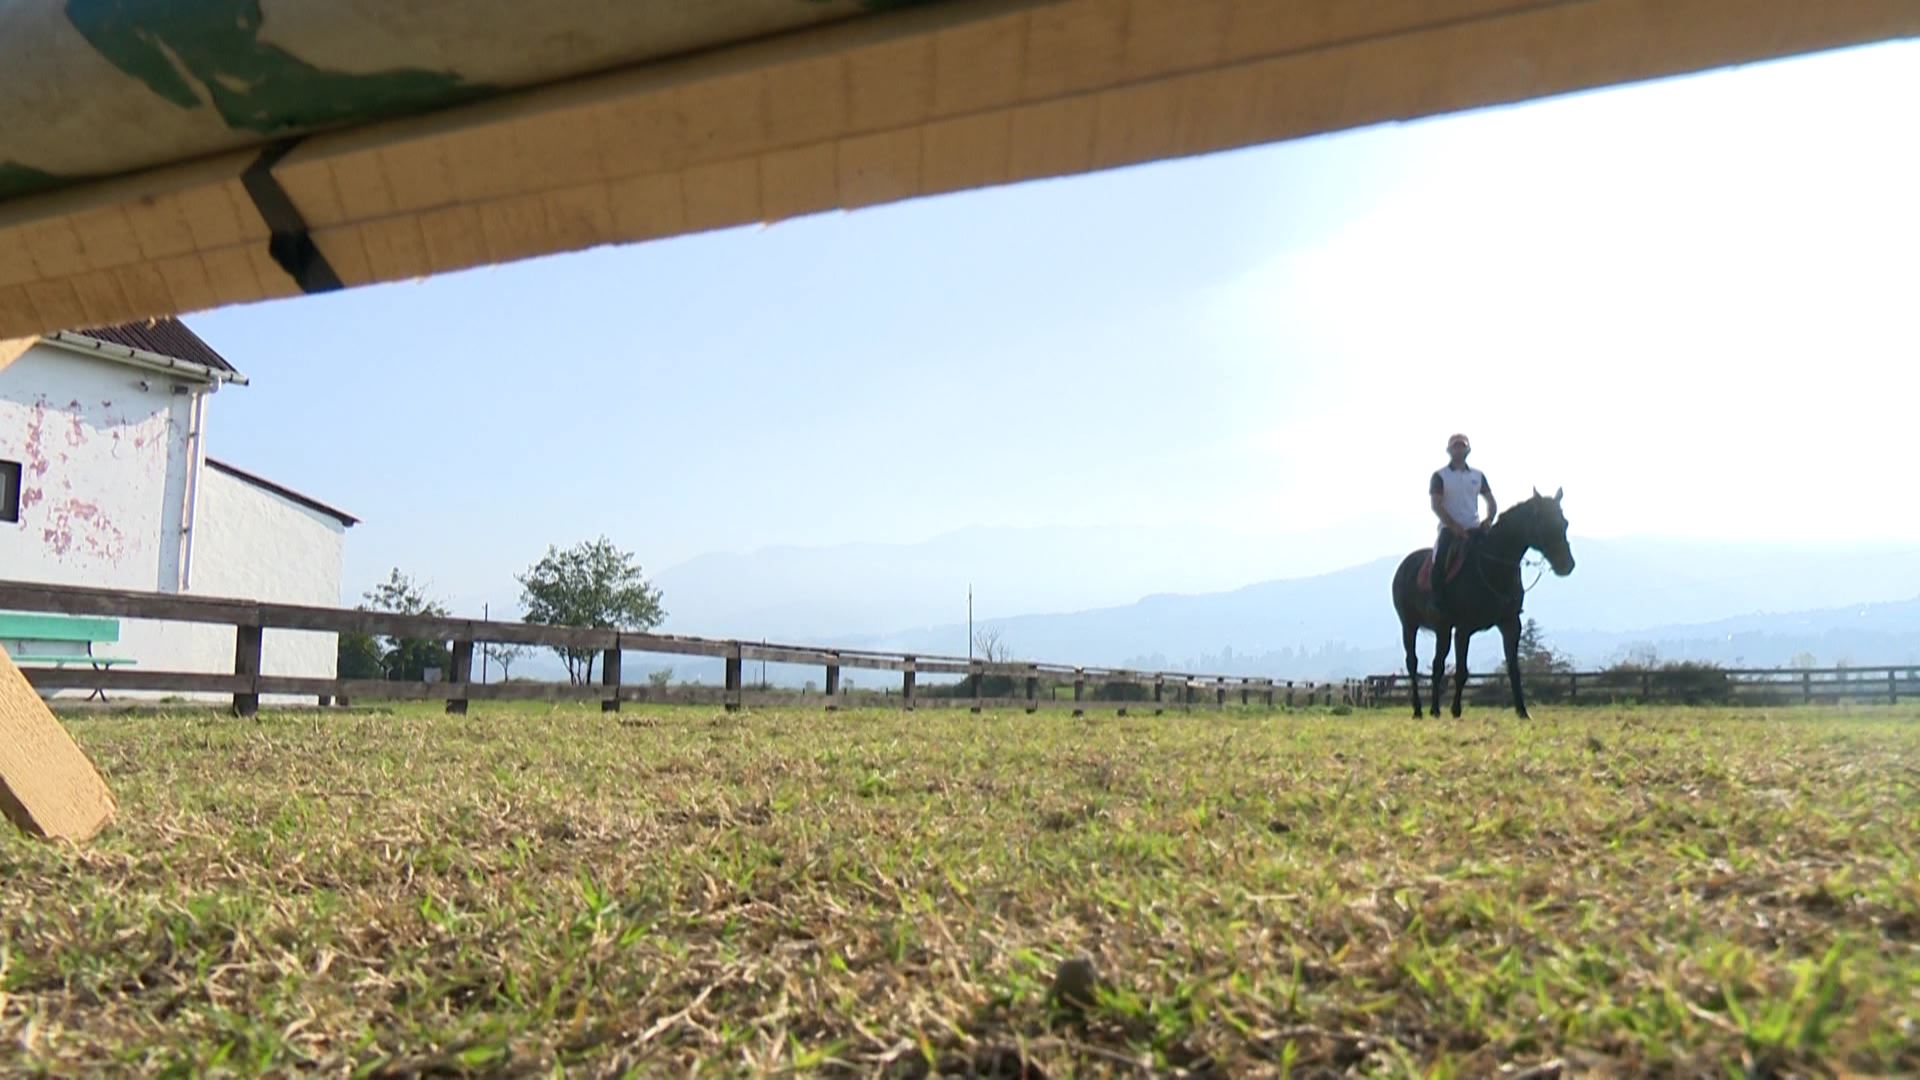 Horse riding - sports type, which experiences caused  certain infrastructure problems in the region